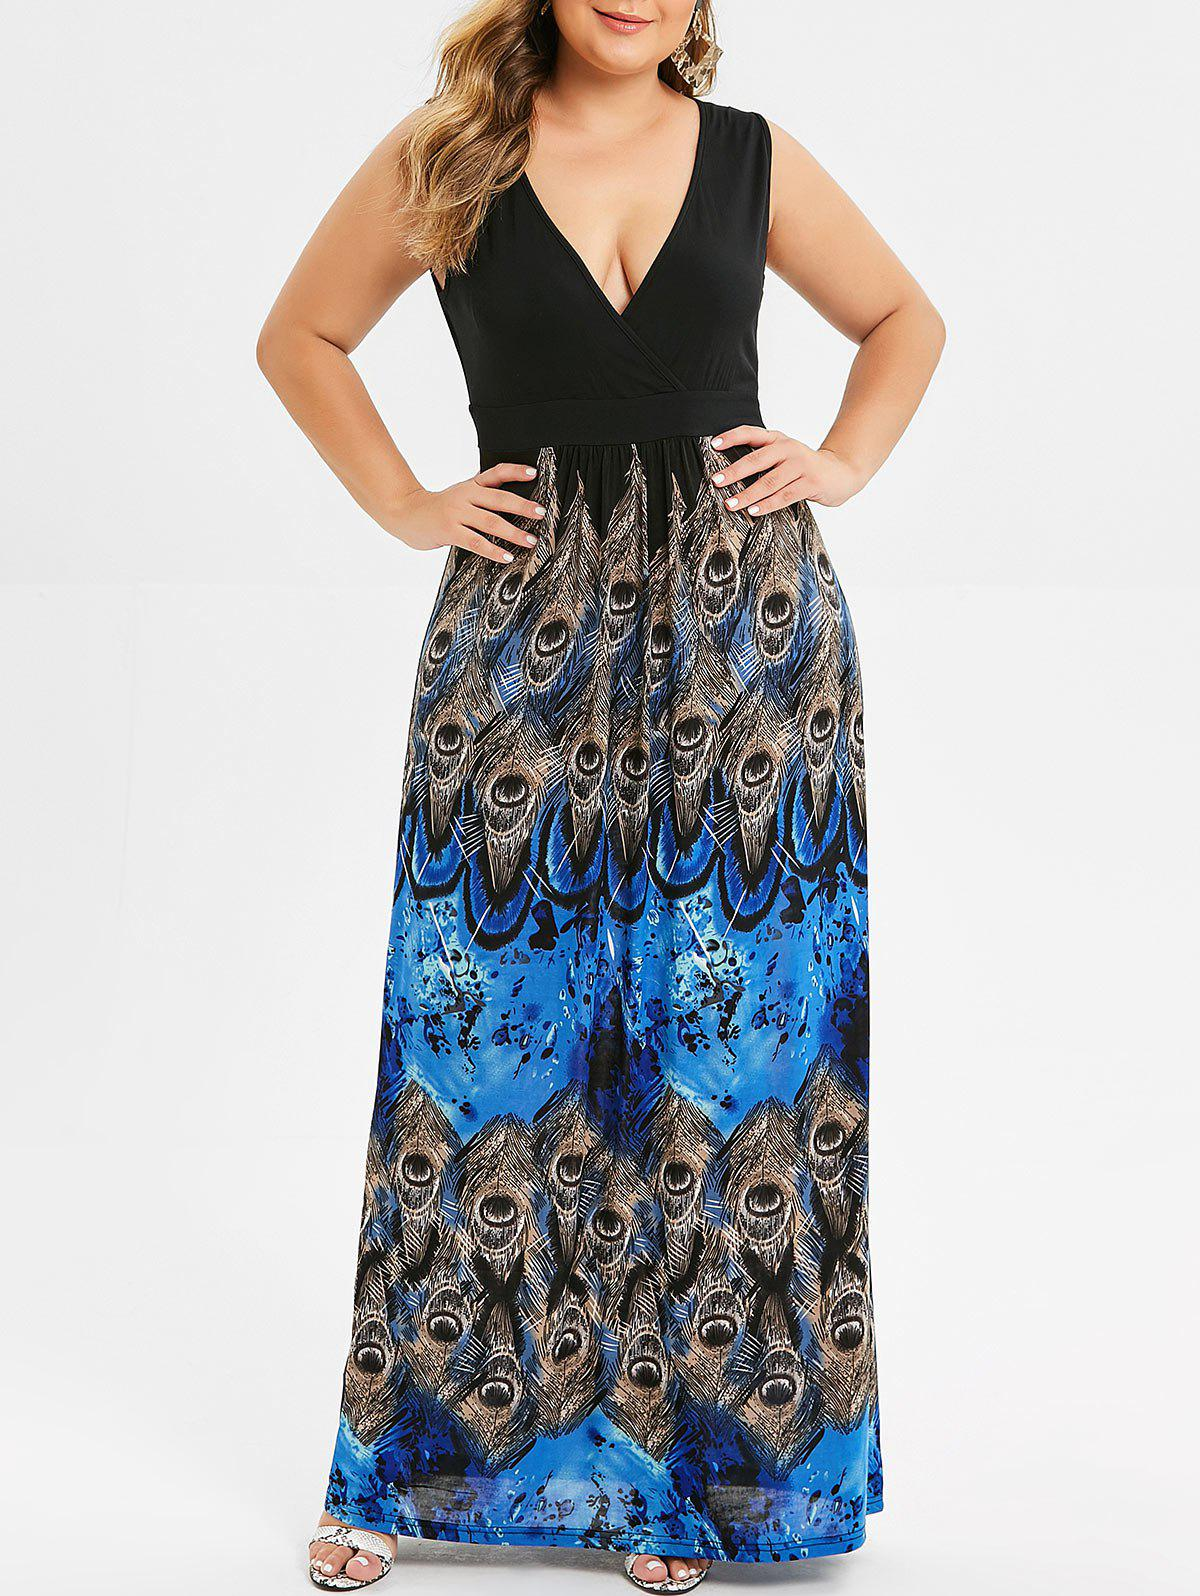 Chic Surplice Plus Size Peacock Feather Maxi Dress